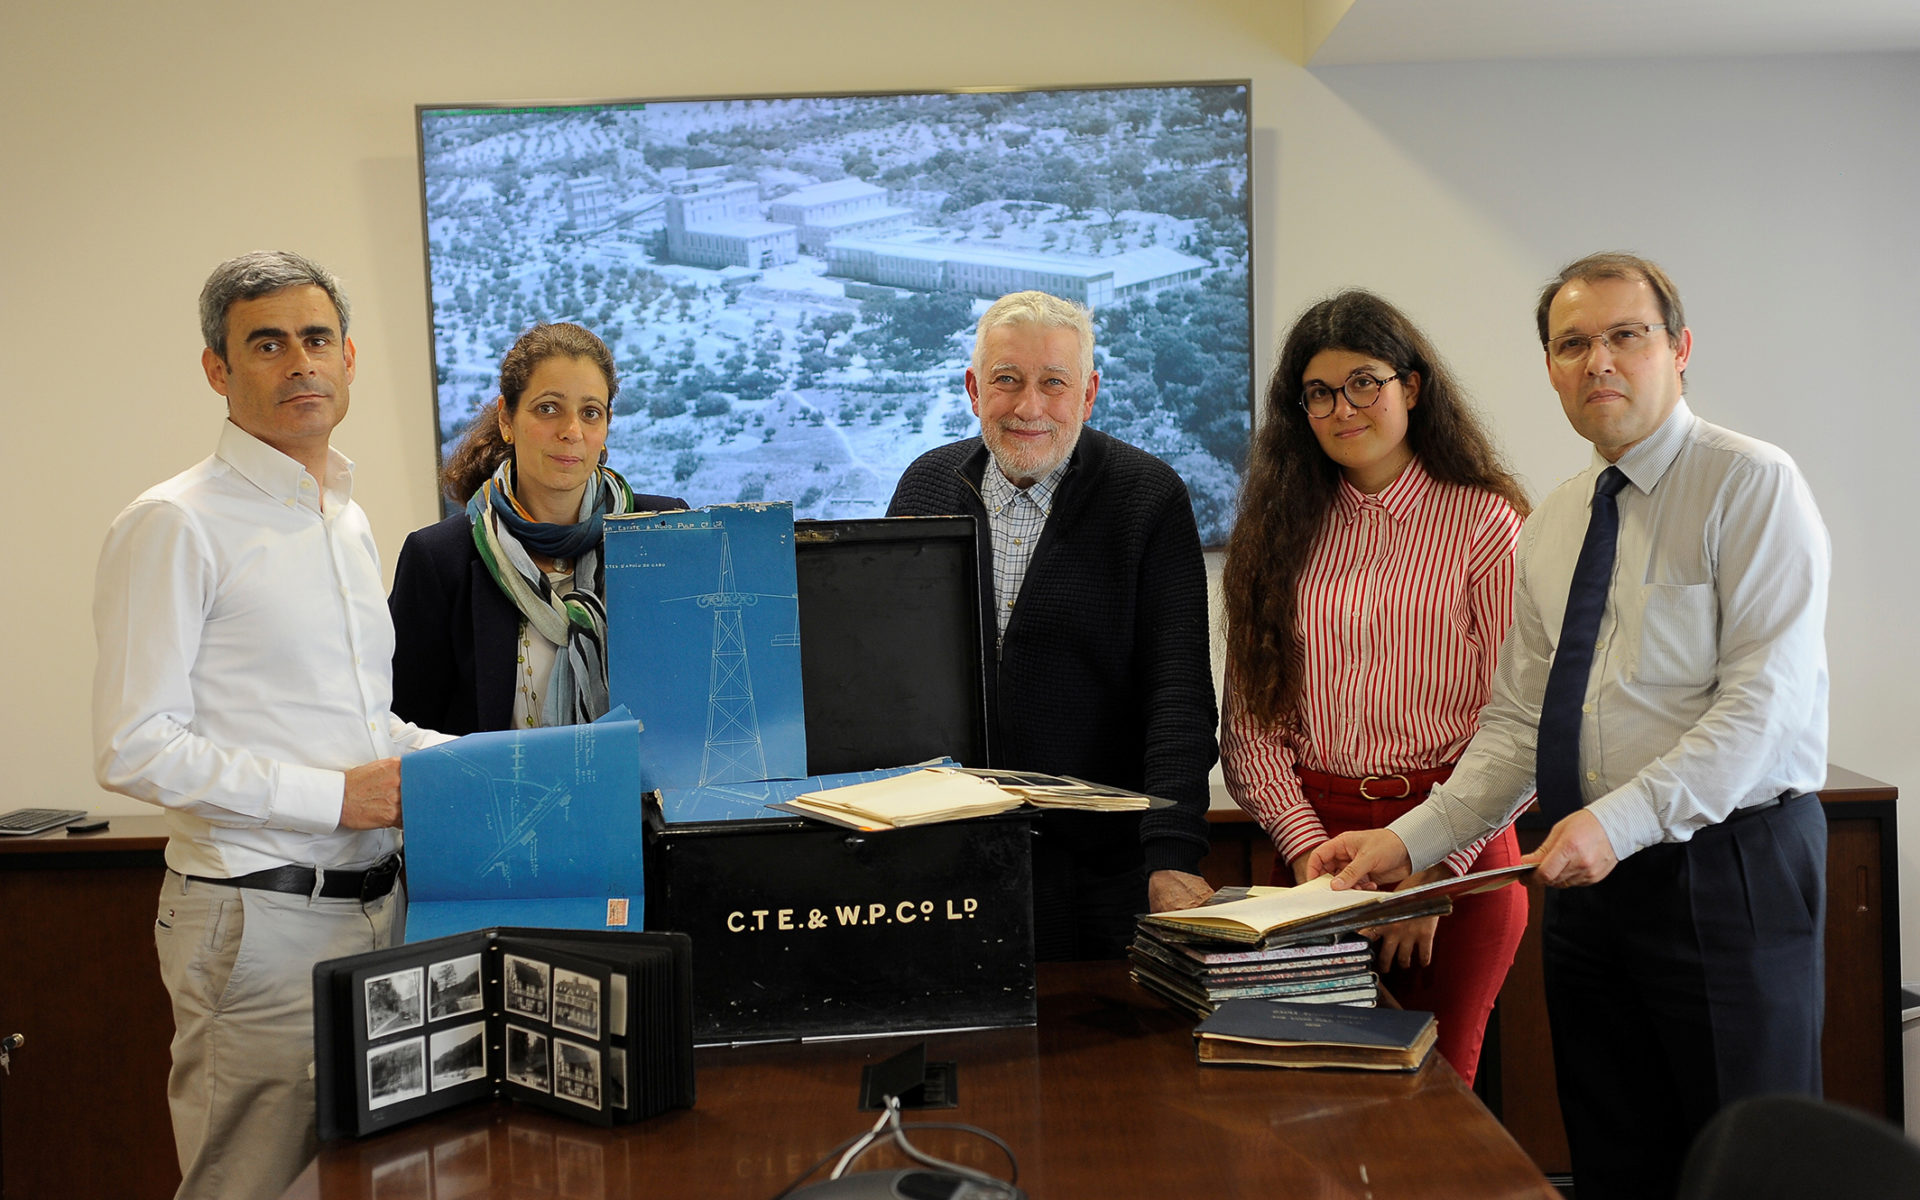 Gualter Vasco, factory manager of Caima (left) with Luis Patornilho, head of human resources at Caima (right), and the team of industrial archeologists